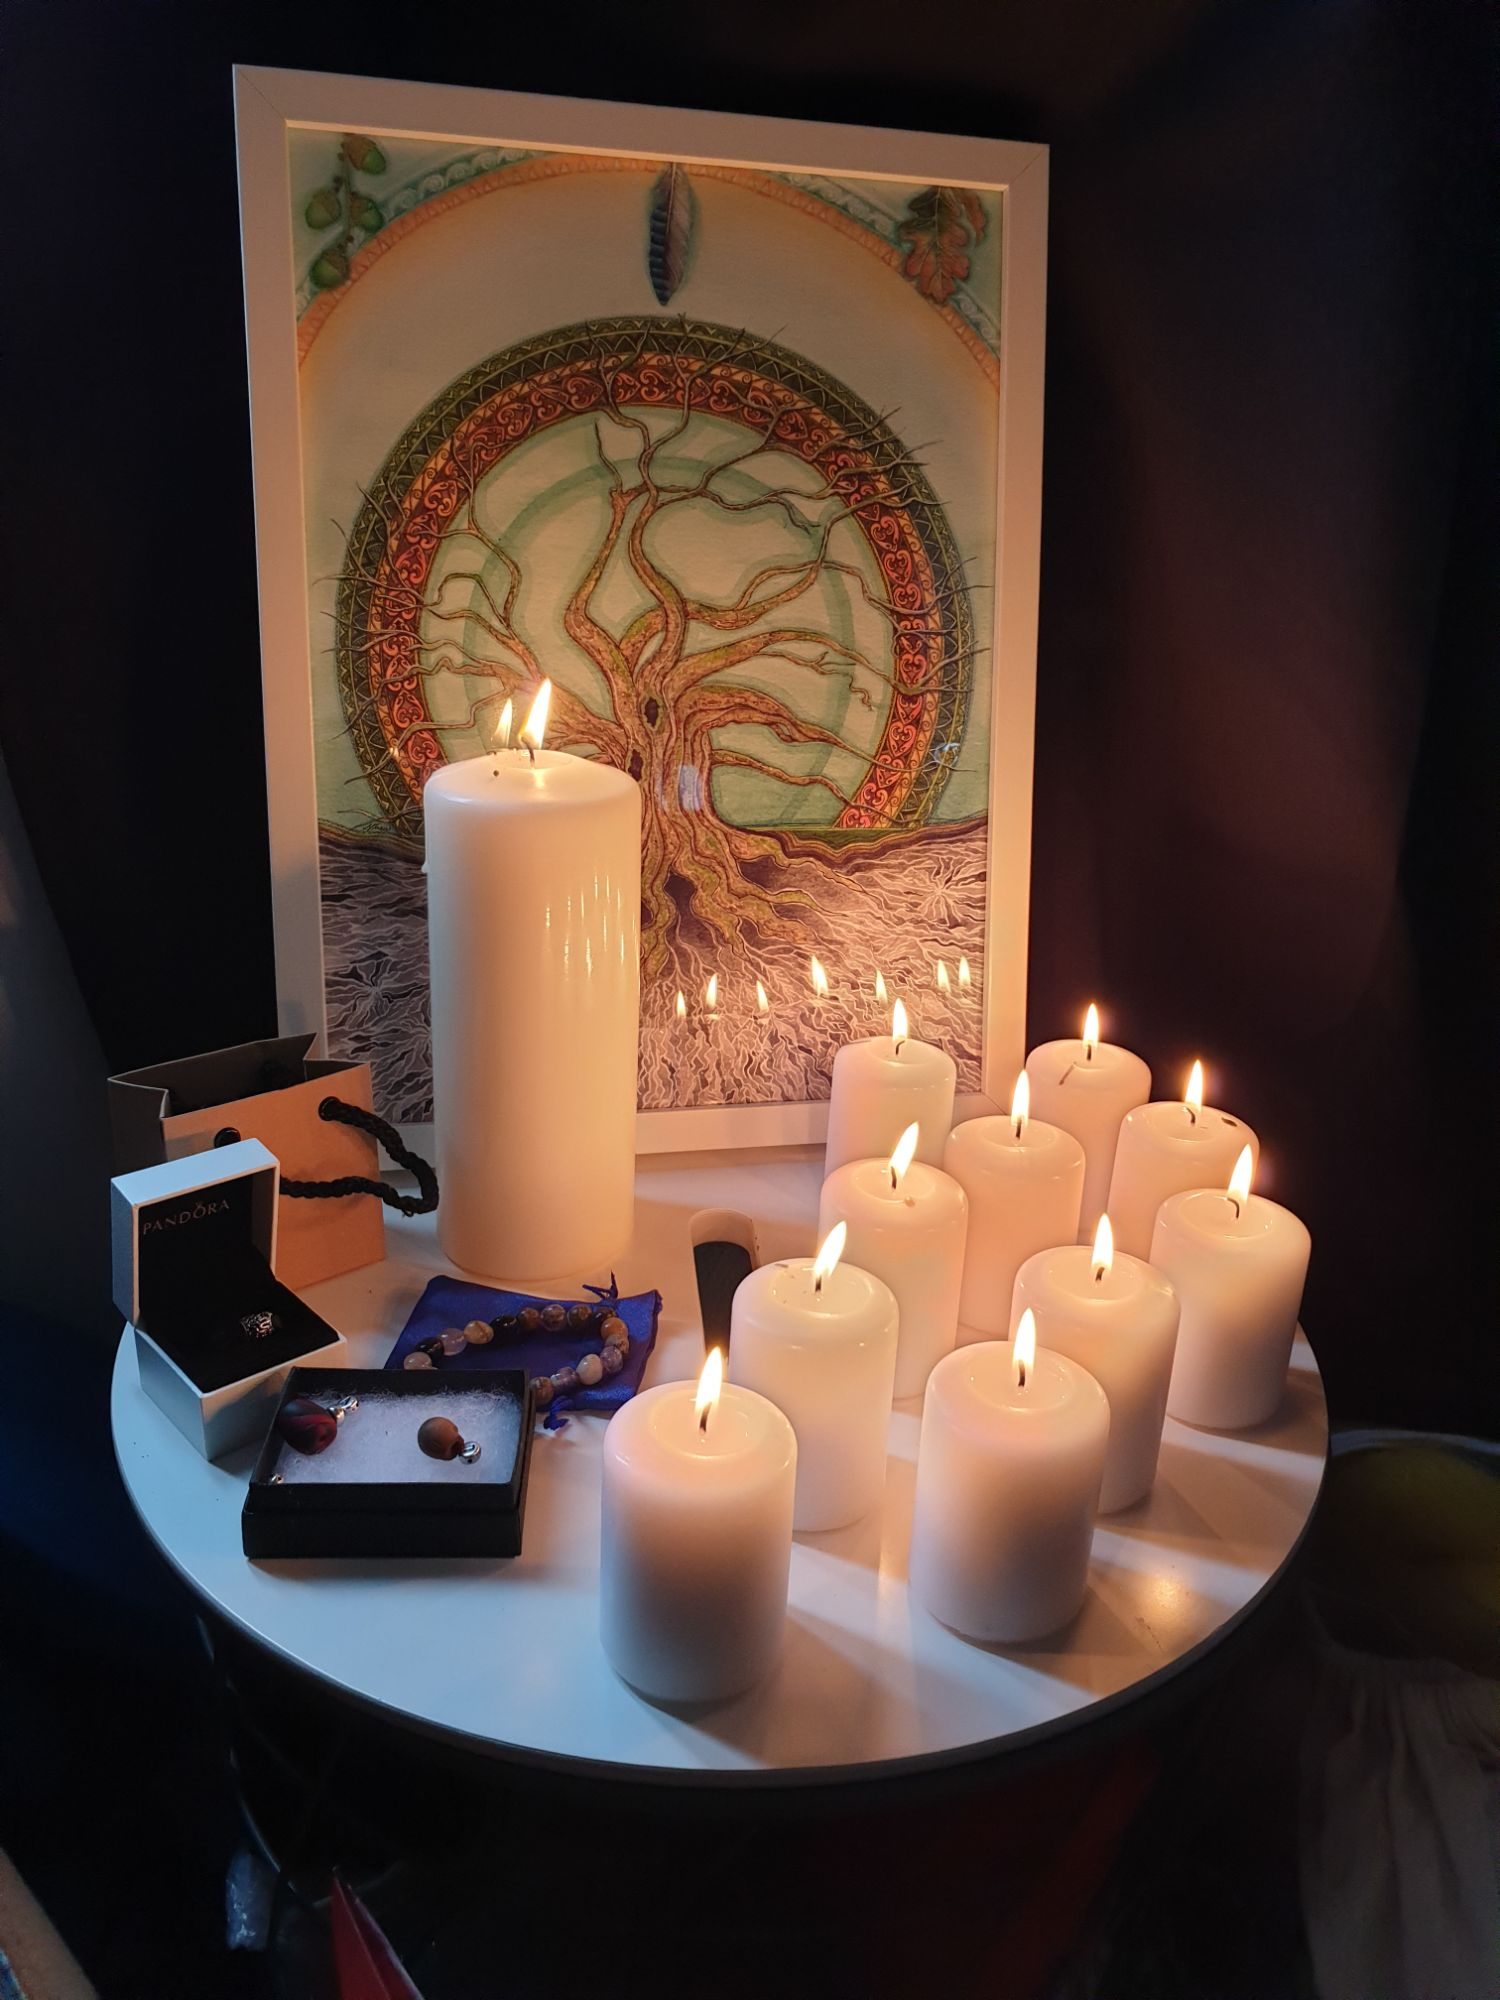 A side table with one large candle and lots of small ones, a selection of beads given as gifts, and a print of a tree of life.